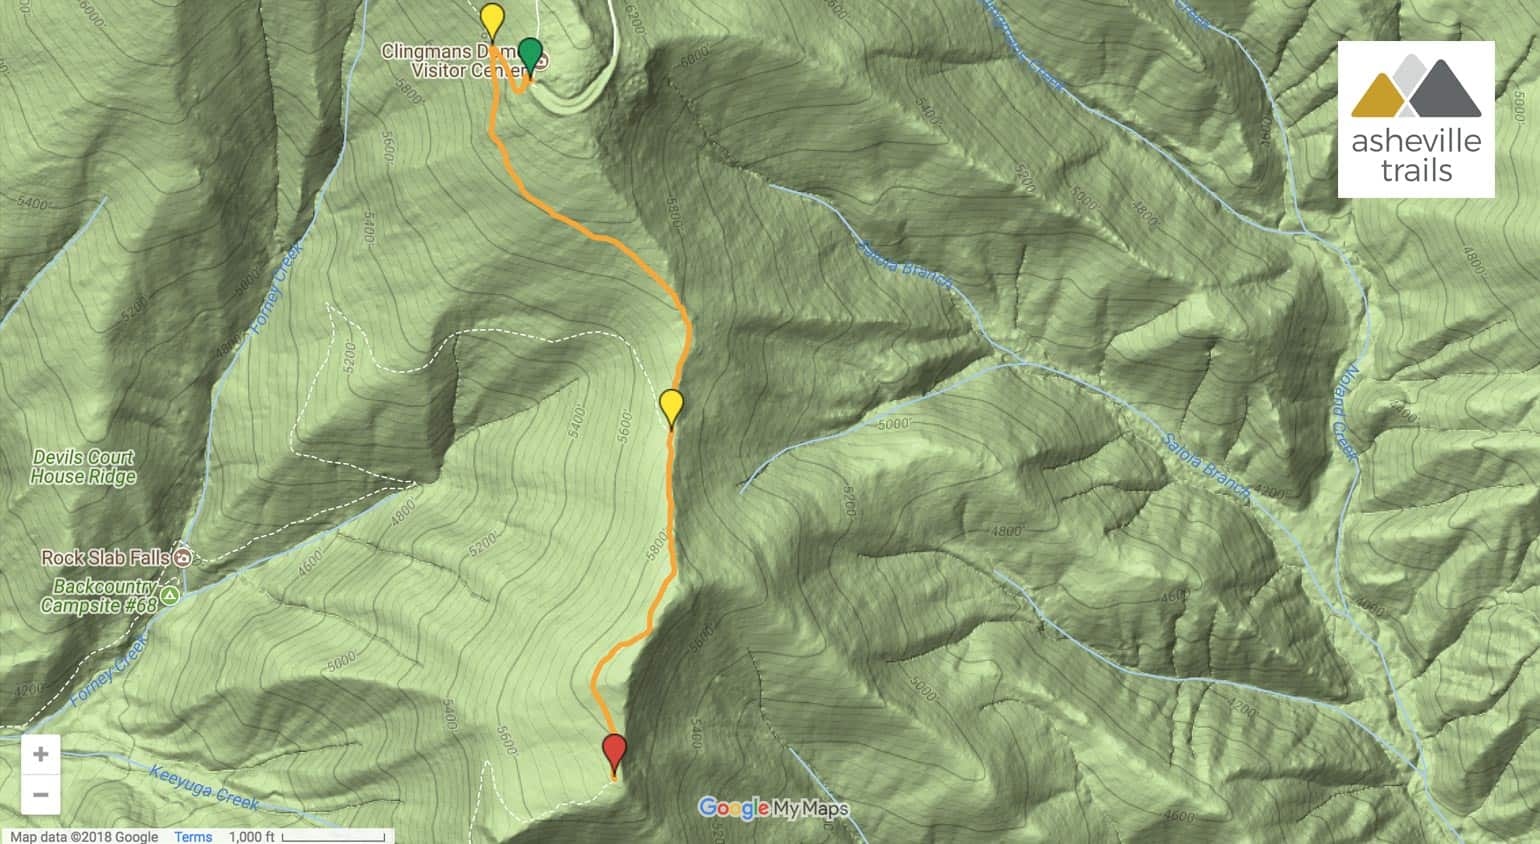 Andrews Bald from Clingman's Dome: Forney Ridge Trail Map